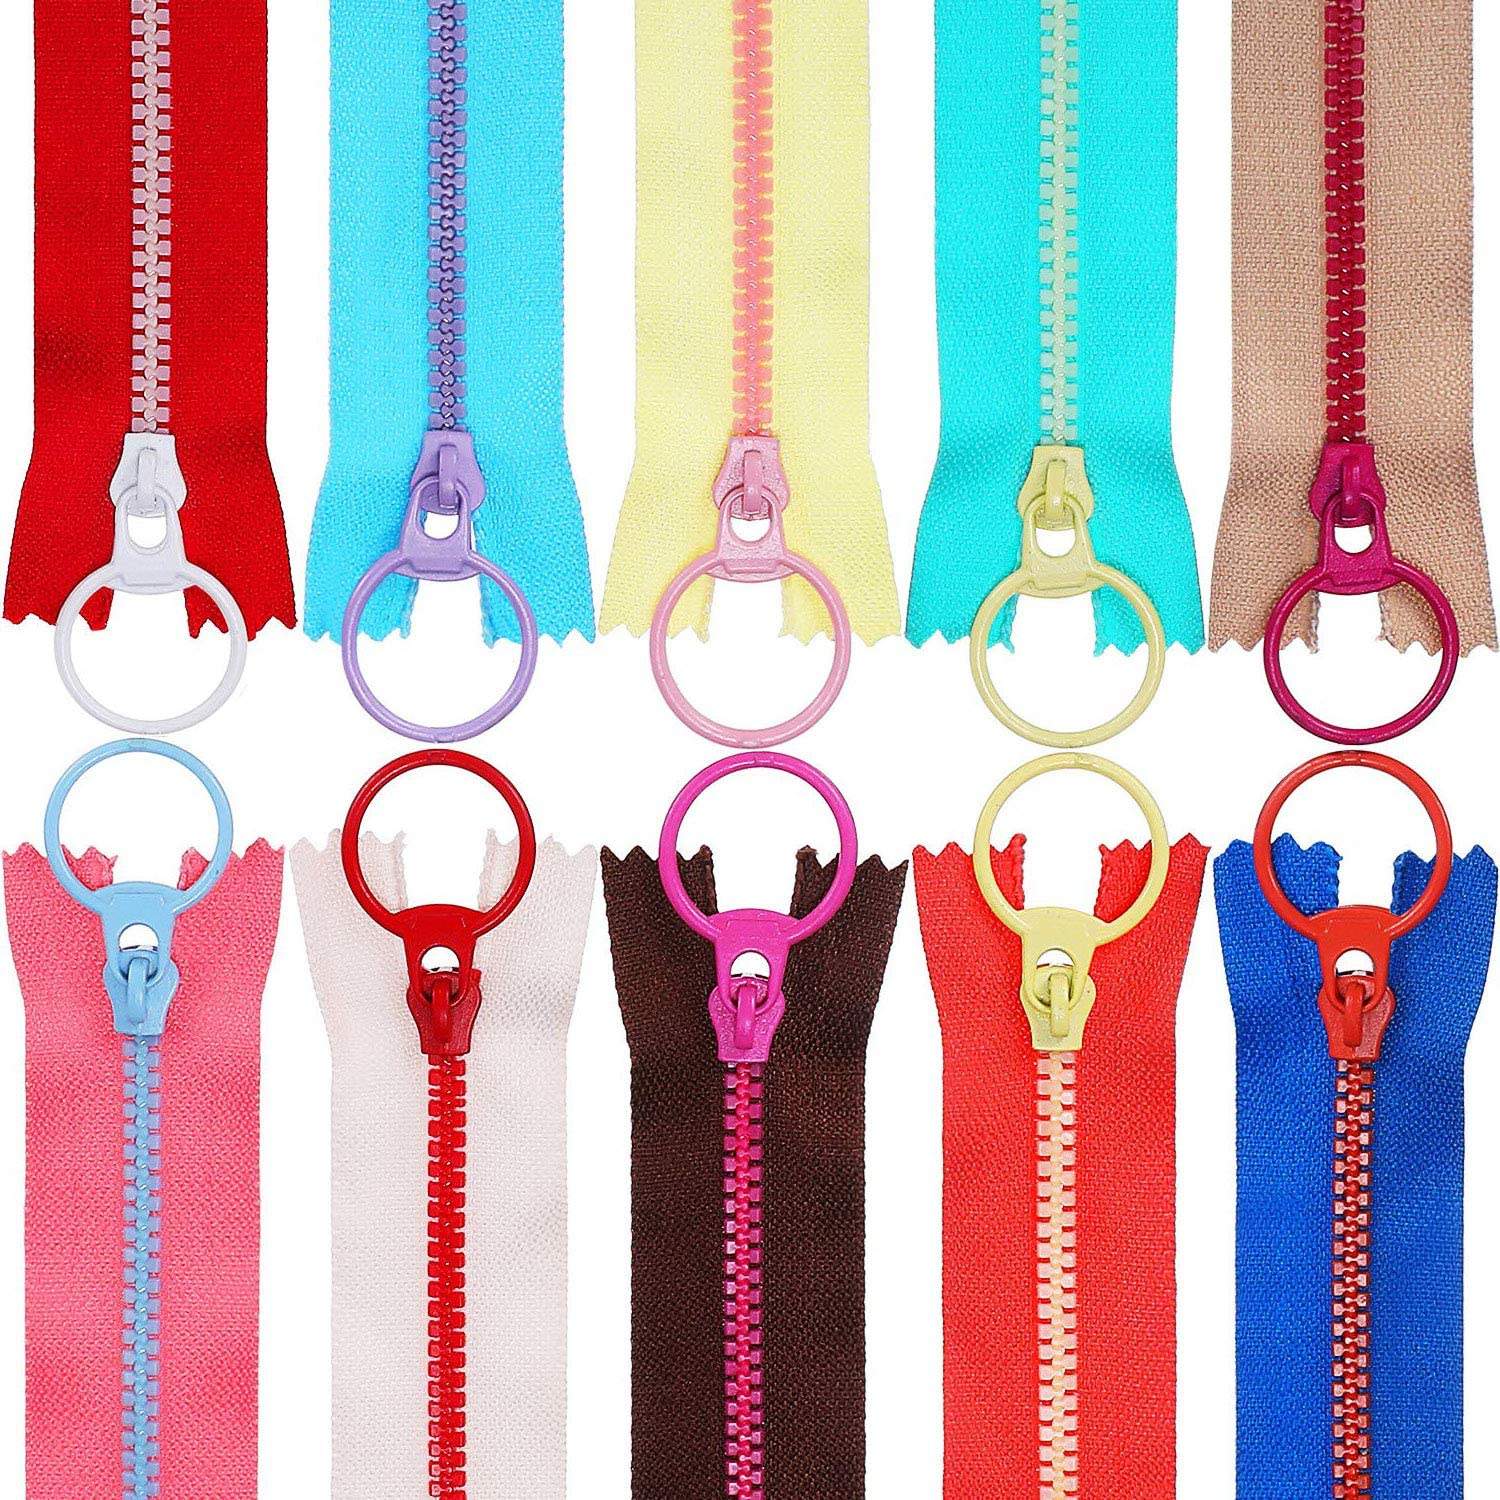 20inch WKXFJJWZC 10pcs Mix Color (50cm) 20 Openings 5# Resin Zipper Pull Ring Zipper Head DIY Sewing Handbags Clothing Accessories